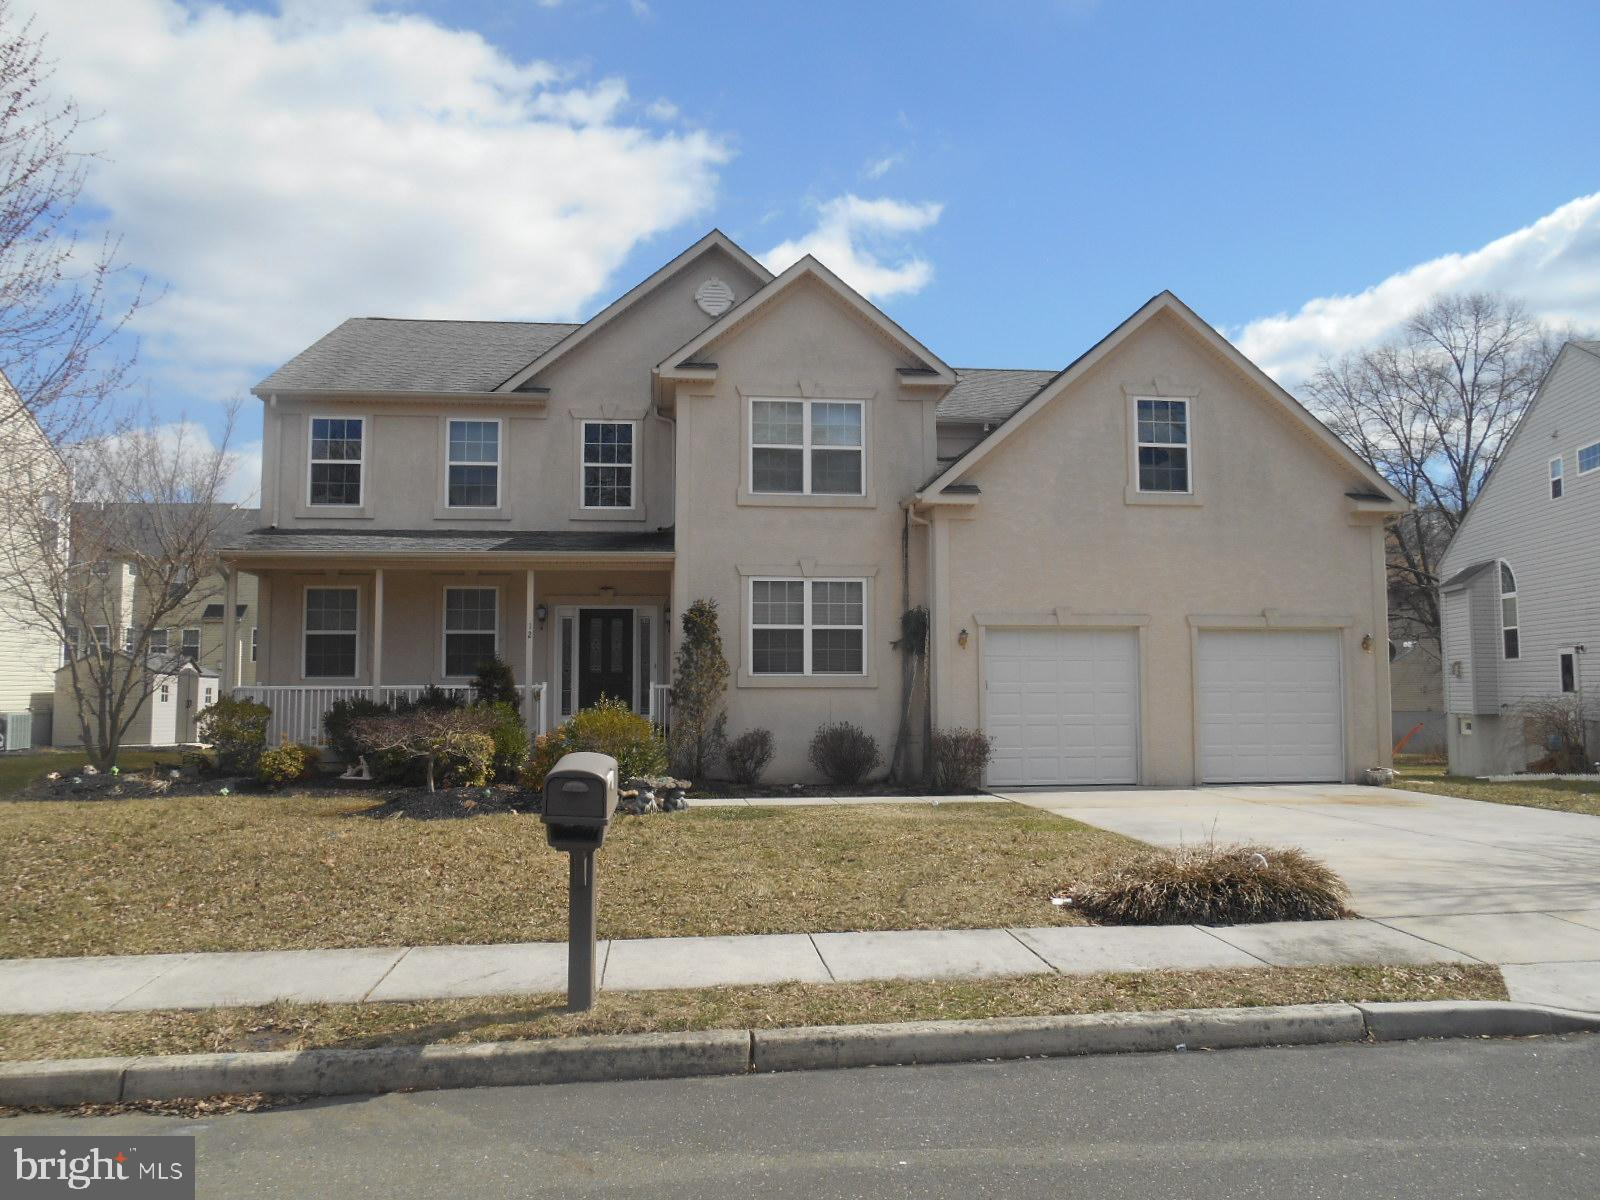 12 SPICER PLACE, LAWNSIDE, NJ 08045